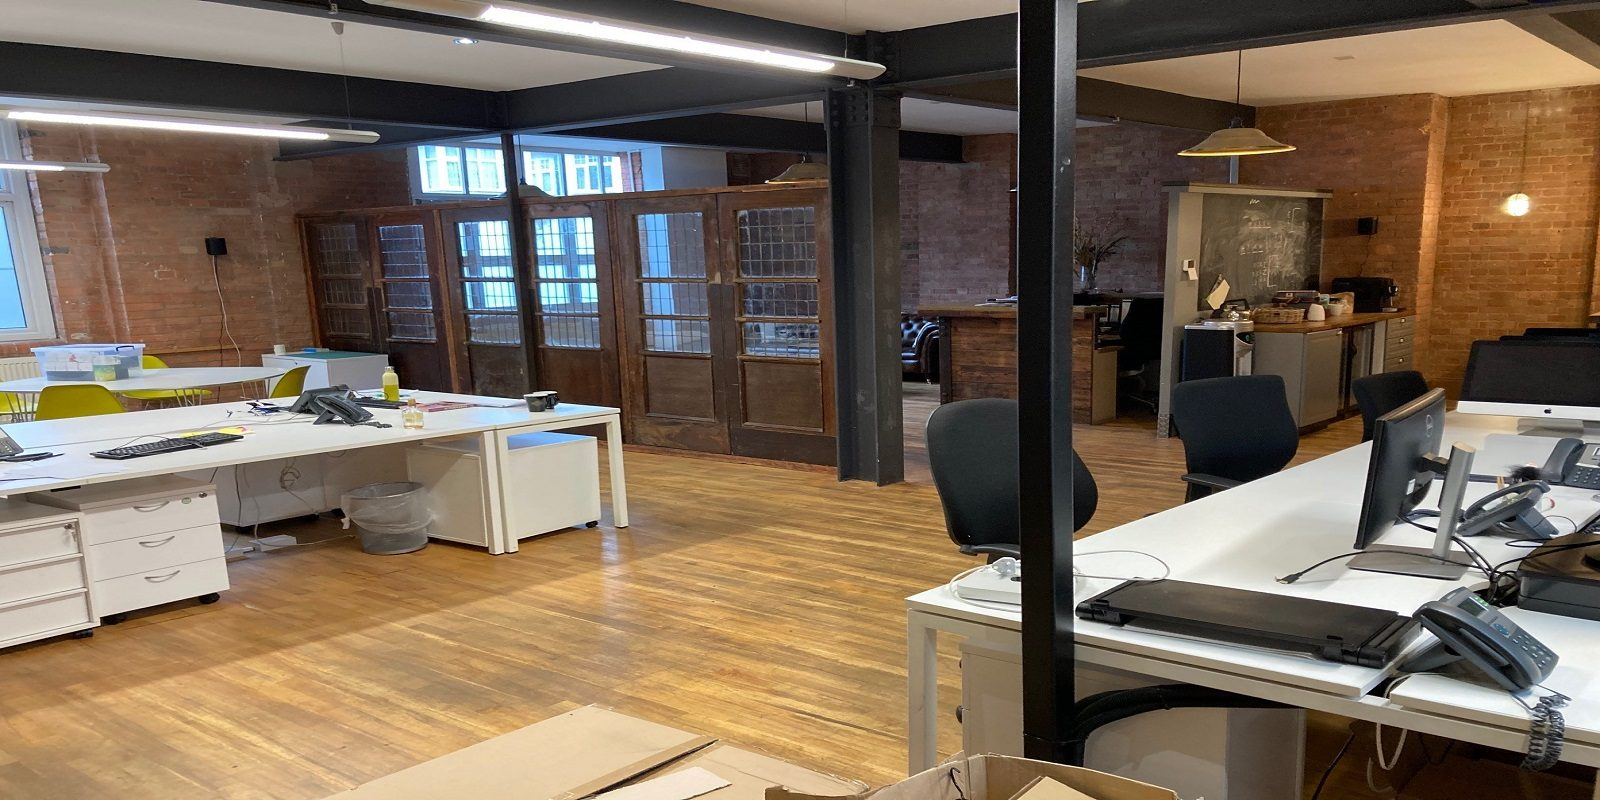 CHARACTER STUDIO / OFFICE BUILDING TO BE LET